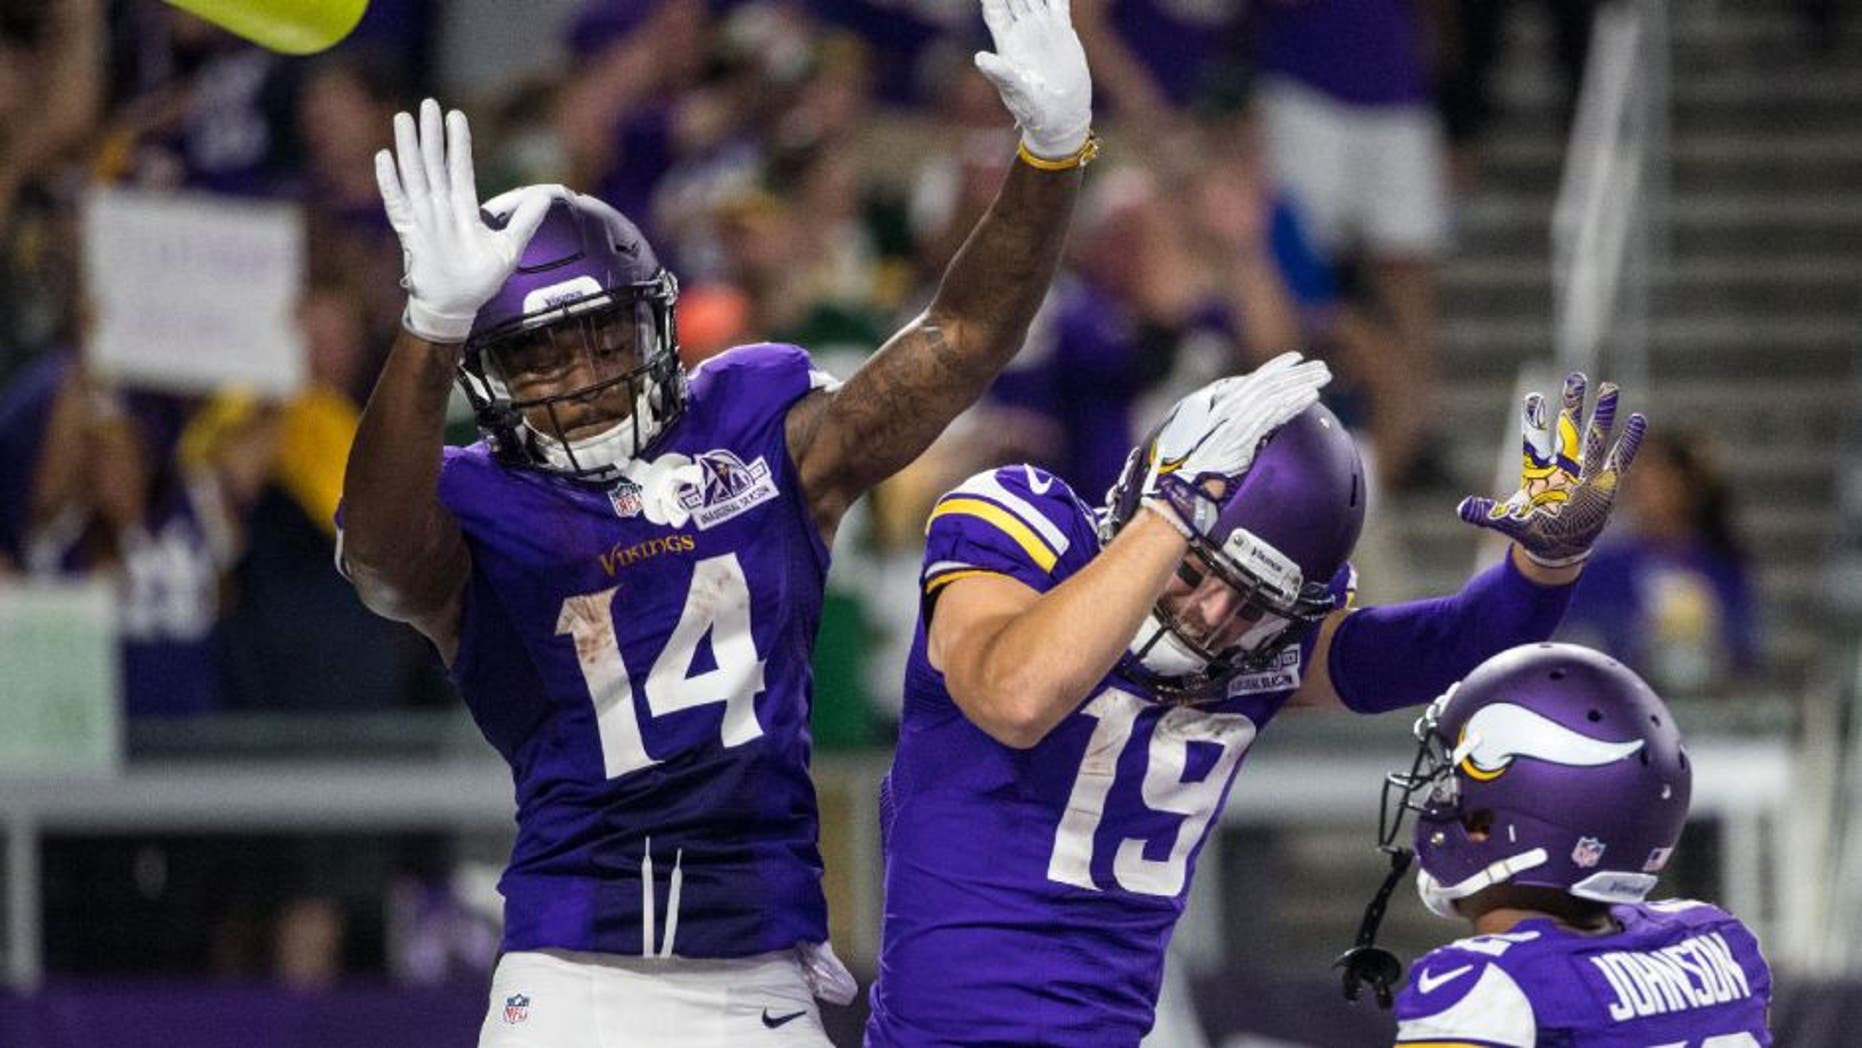 Minnesota Vikings wide receiver Stefon Diggs celebrates his touchdown with wide receiver Adam Thielen during the third quarter against the Green Bay Packers.